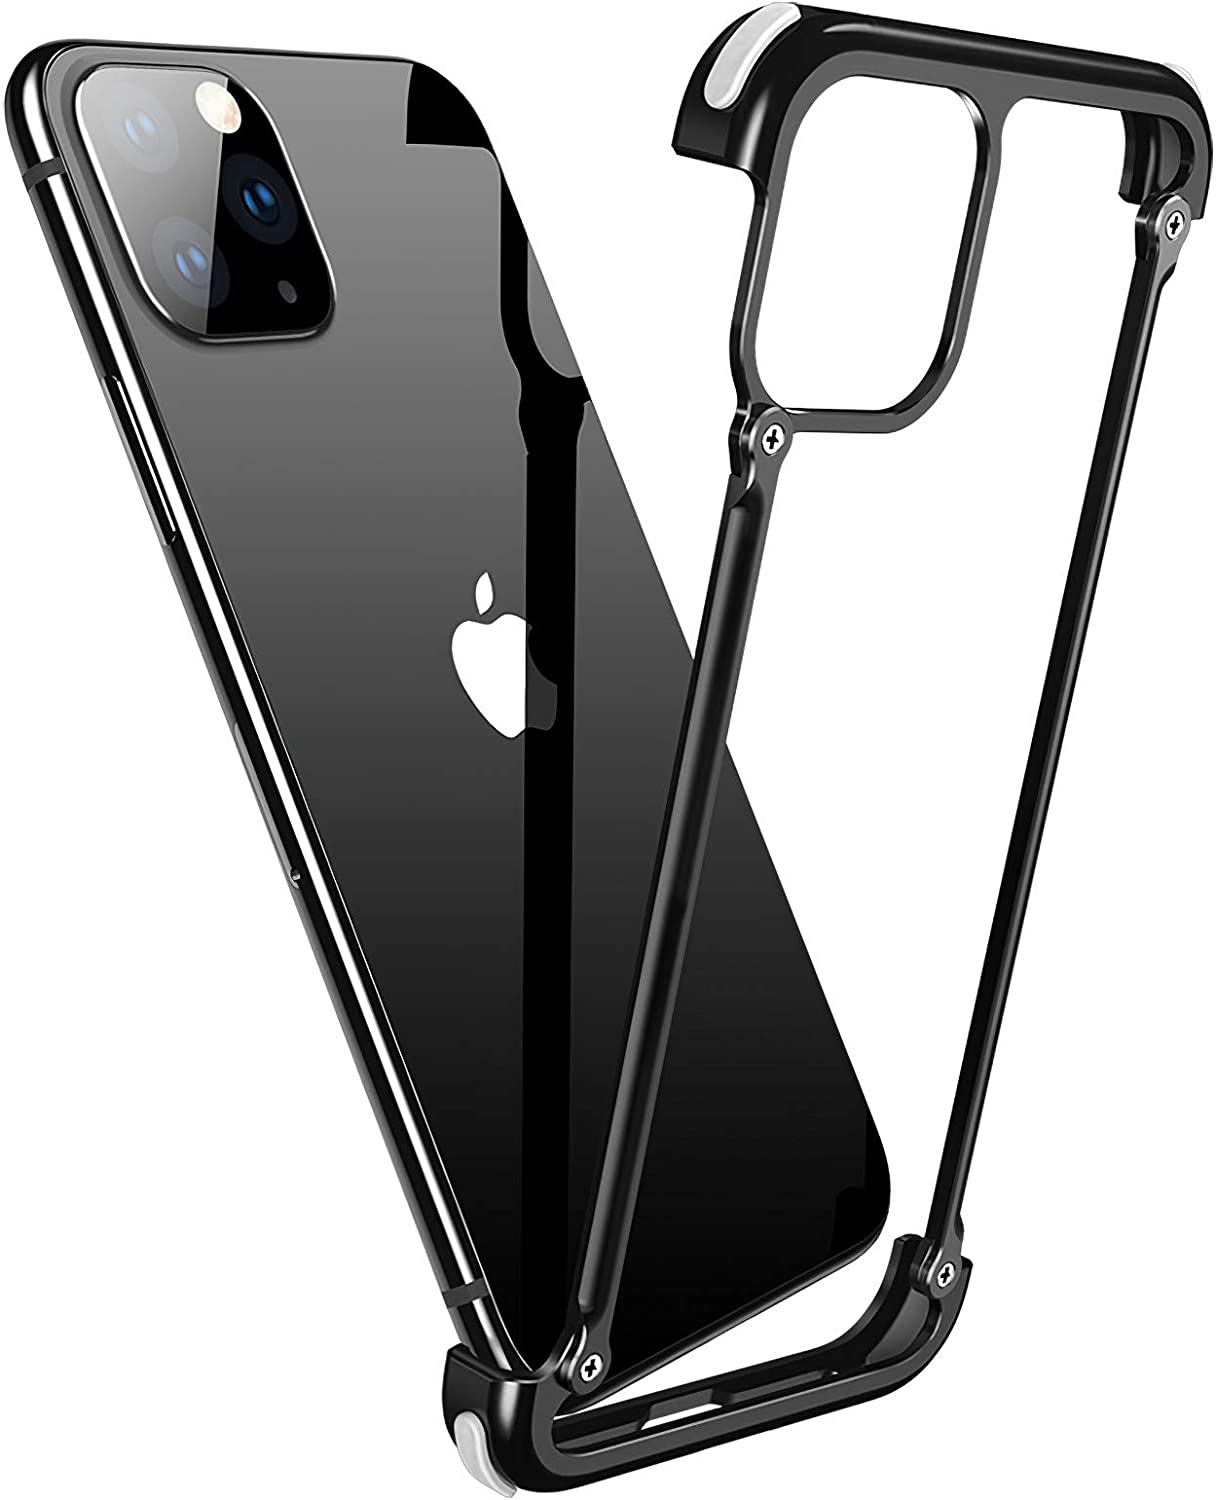 OATSBASF Aluminum Bumper Case Compatible with iPhone 11 Pro, Utral-Thin Corner Corver Bumpers Case for iPhone 11 Pro 5.8-inch (Black)